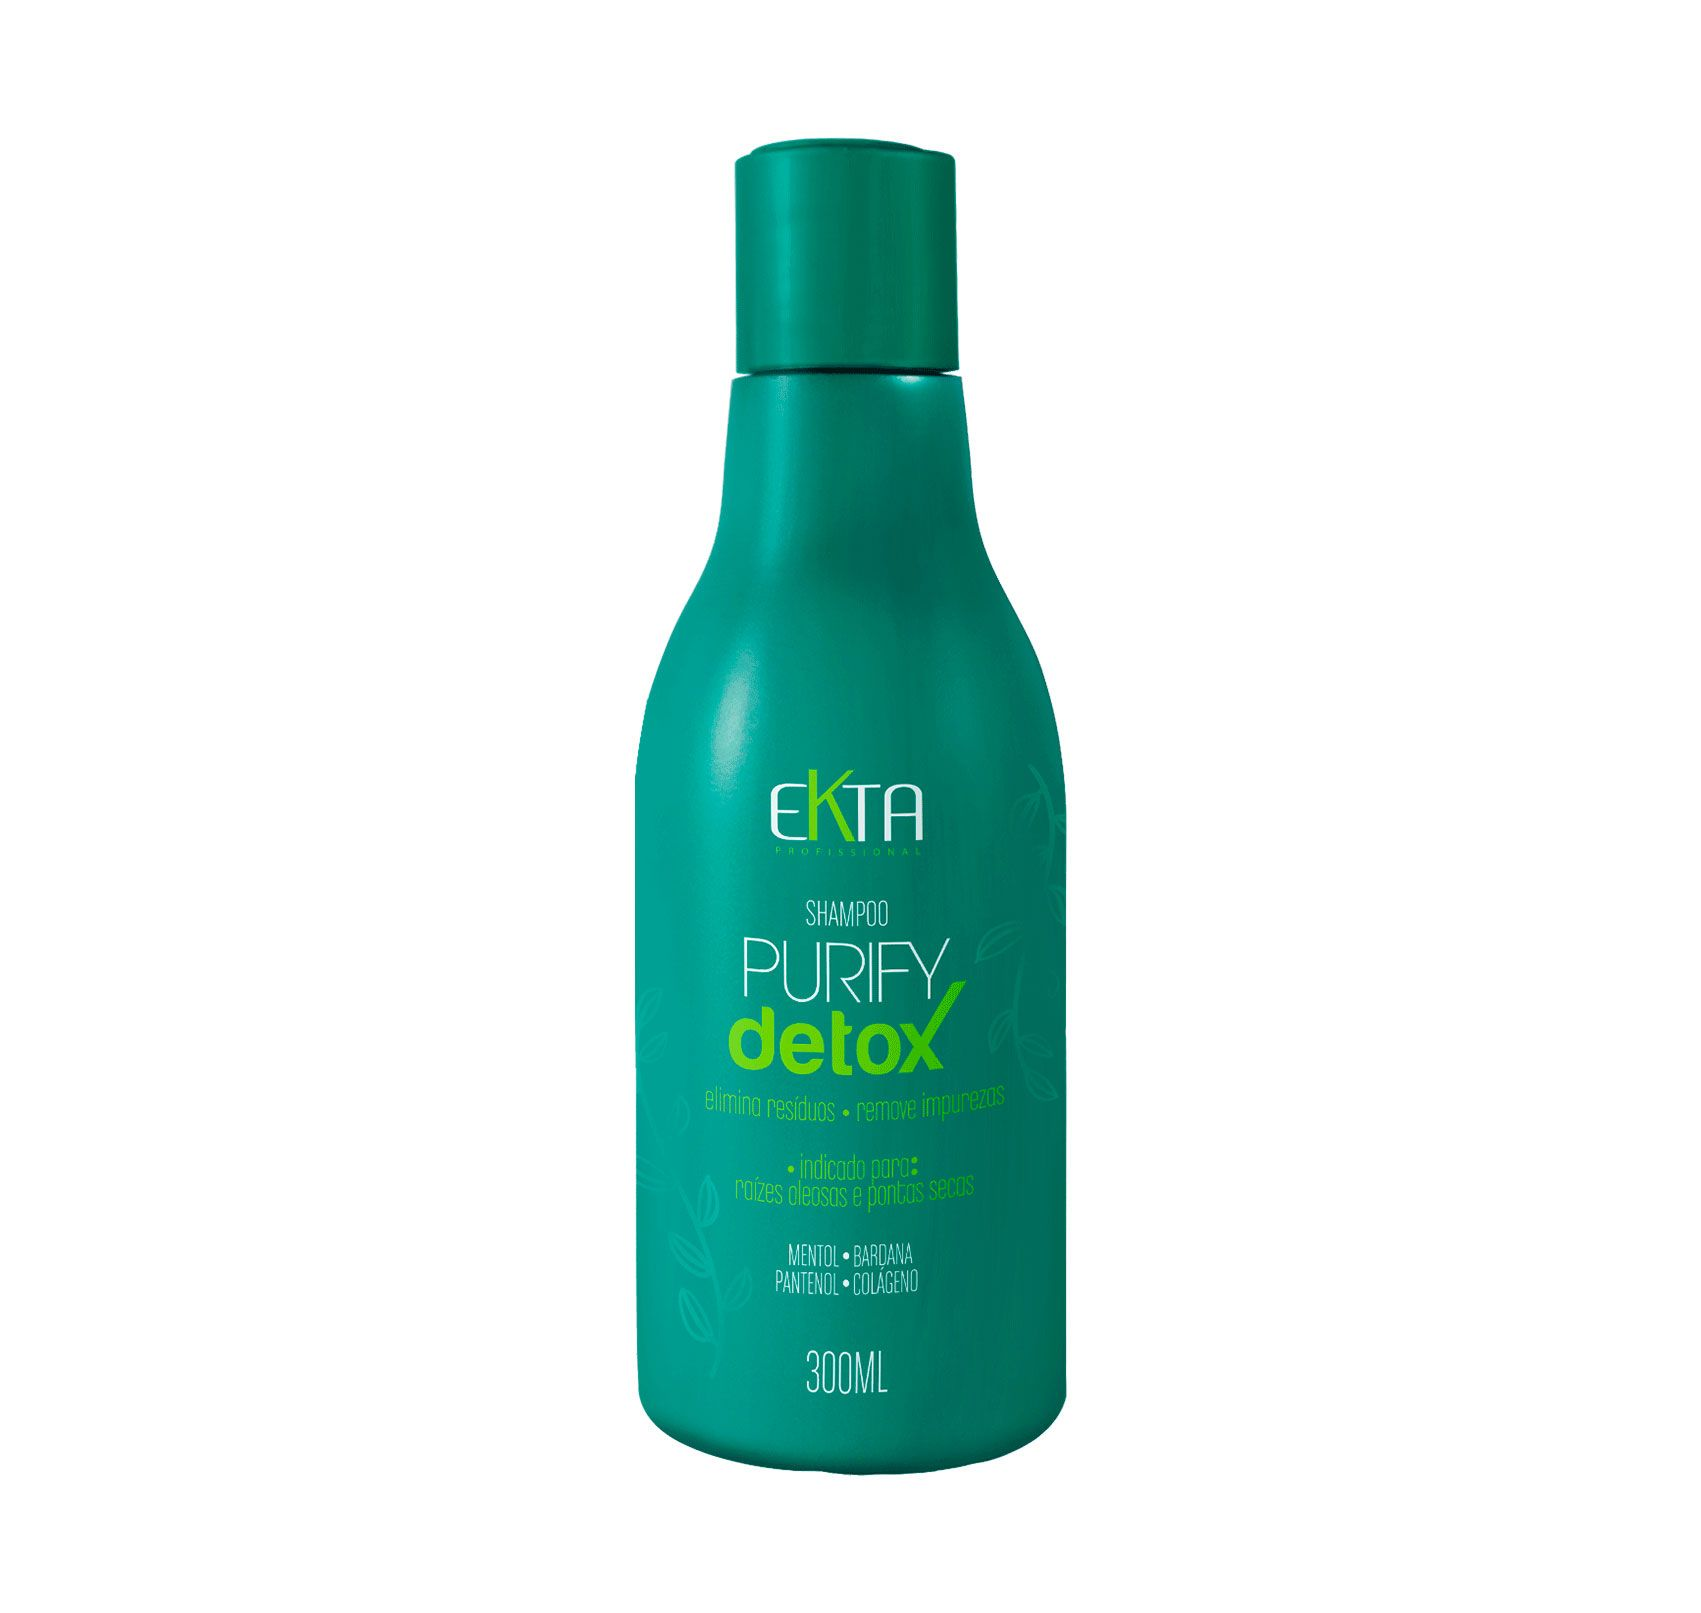 Shampoo Purify Detox (300mL)